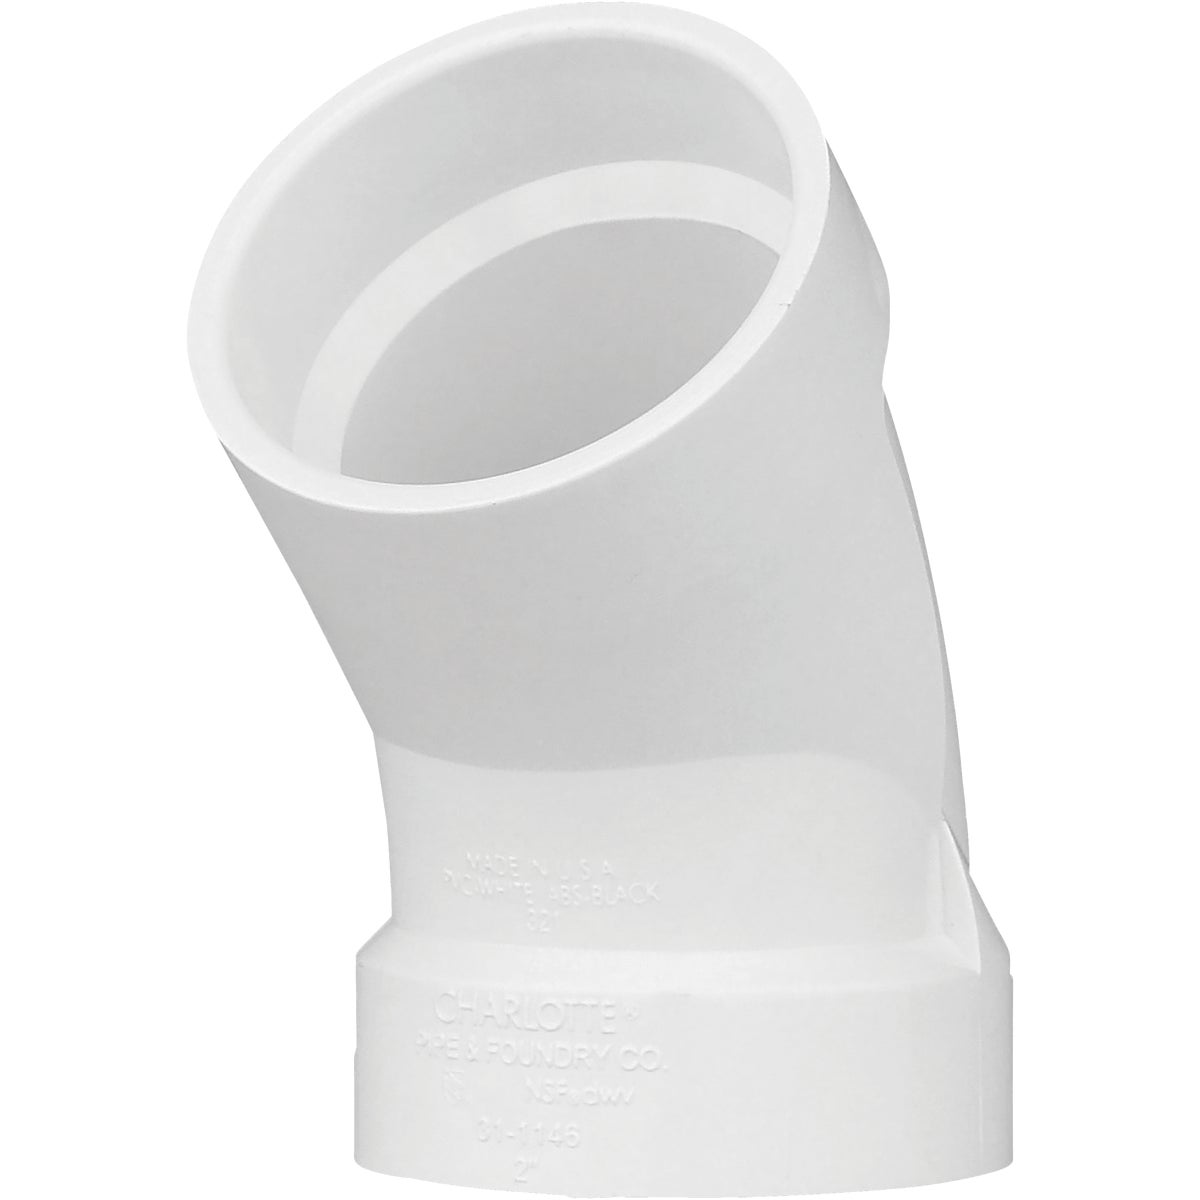 "2""45D DWV SANITARY ELBOW - 73620 by Genova Inc  Pvc Dwv"